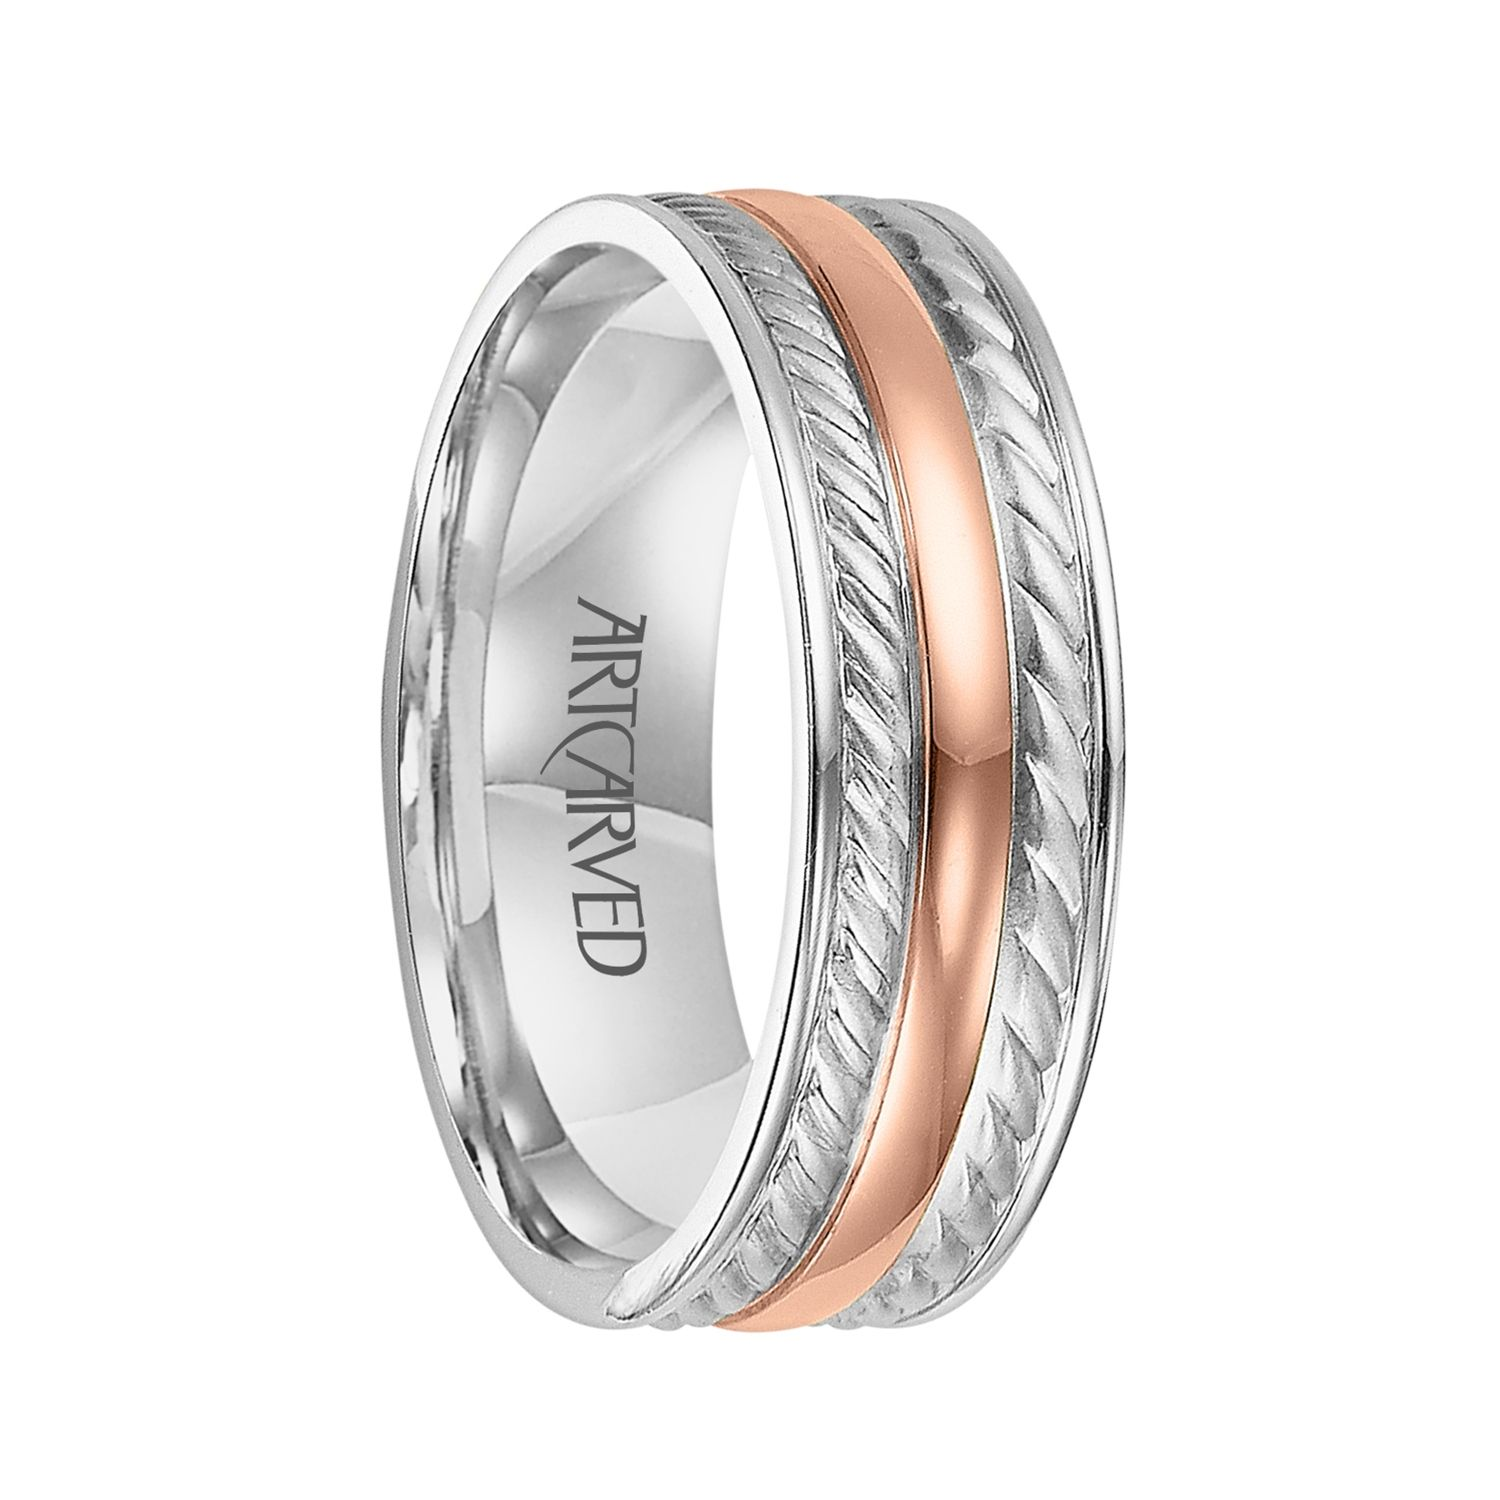 mens gold wedding band ArtCarved Rings DIXON Two Tone 14K White Gold Ring with Rose Wedding Rings Rose GoldMen